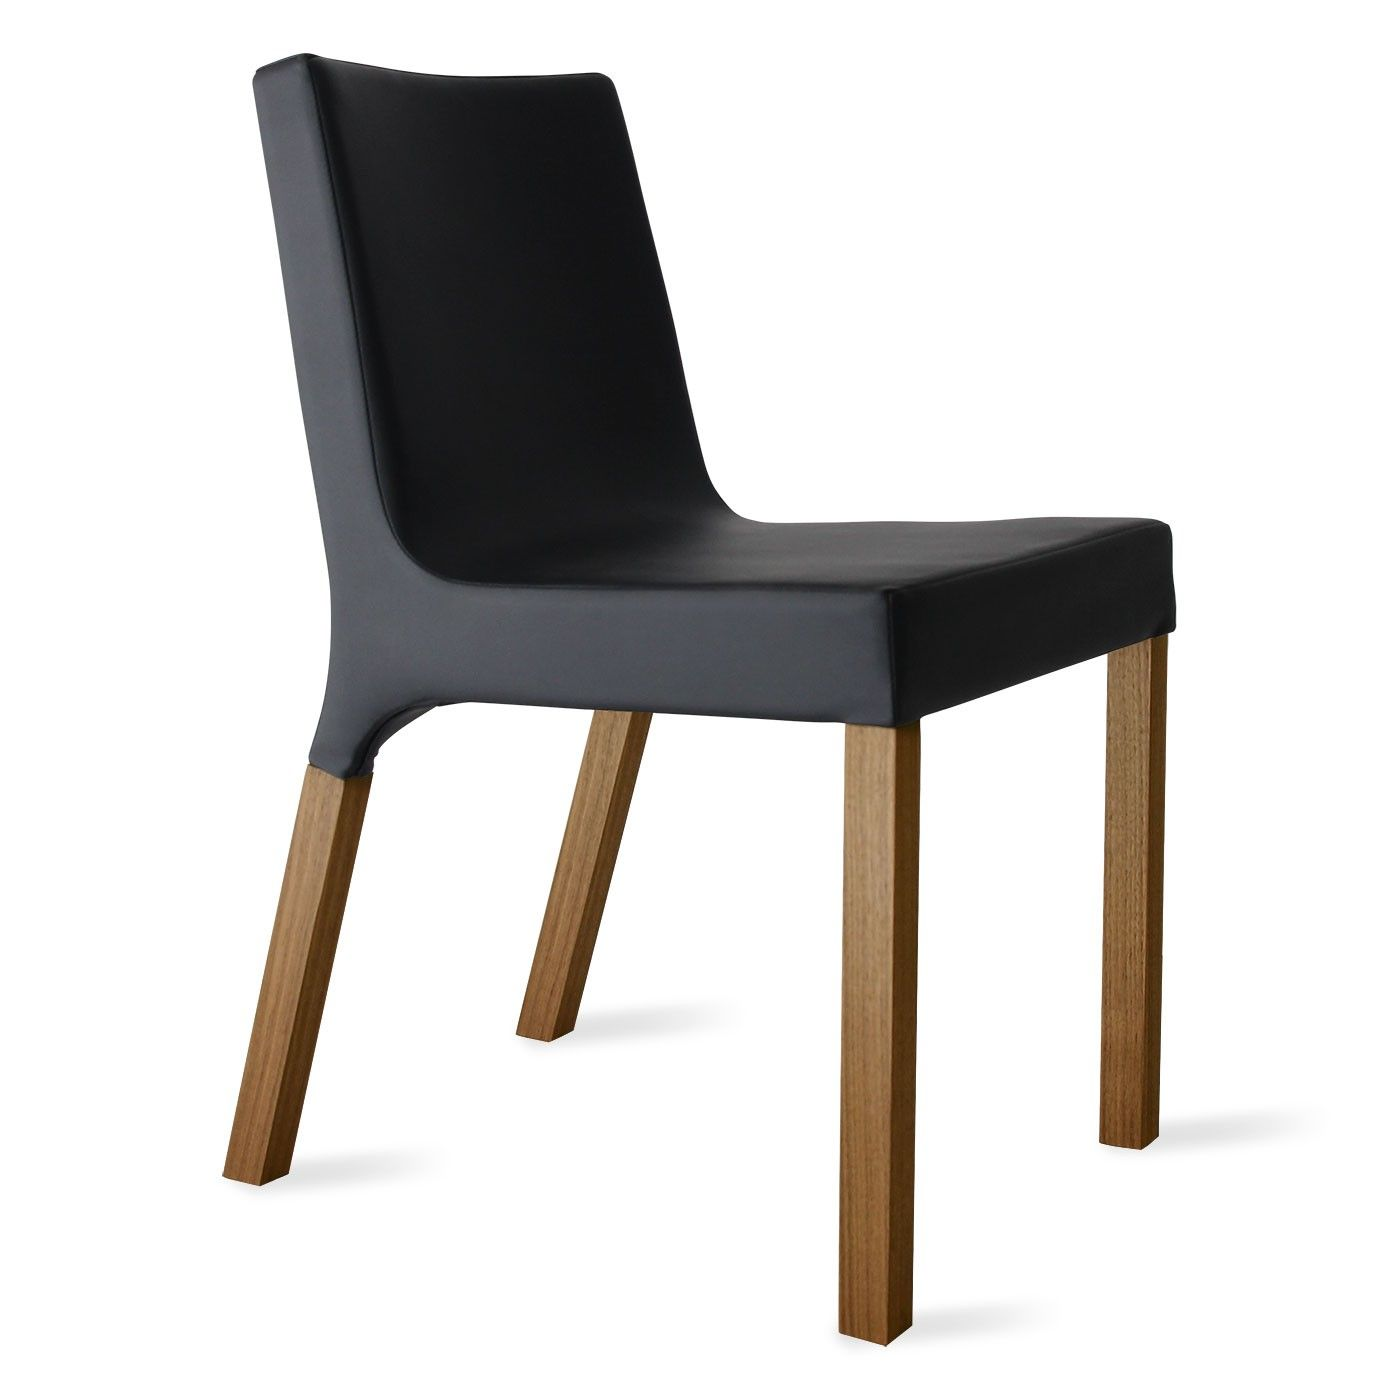 Modern Black Fabric and Wood Chair | Mill Valley - Escalon | Pinterest